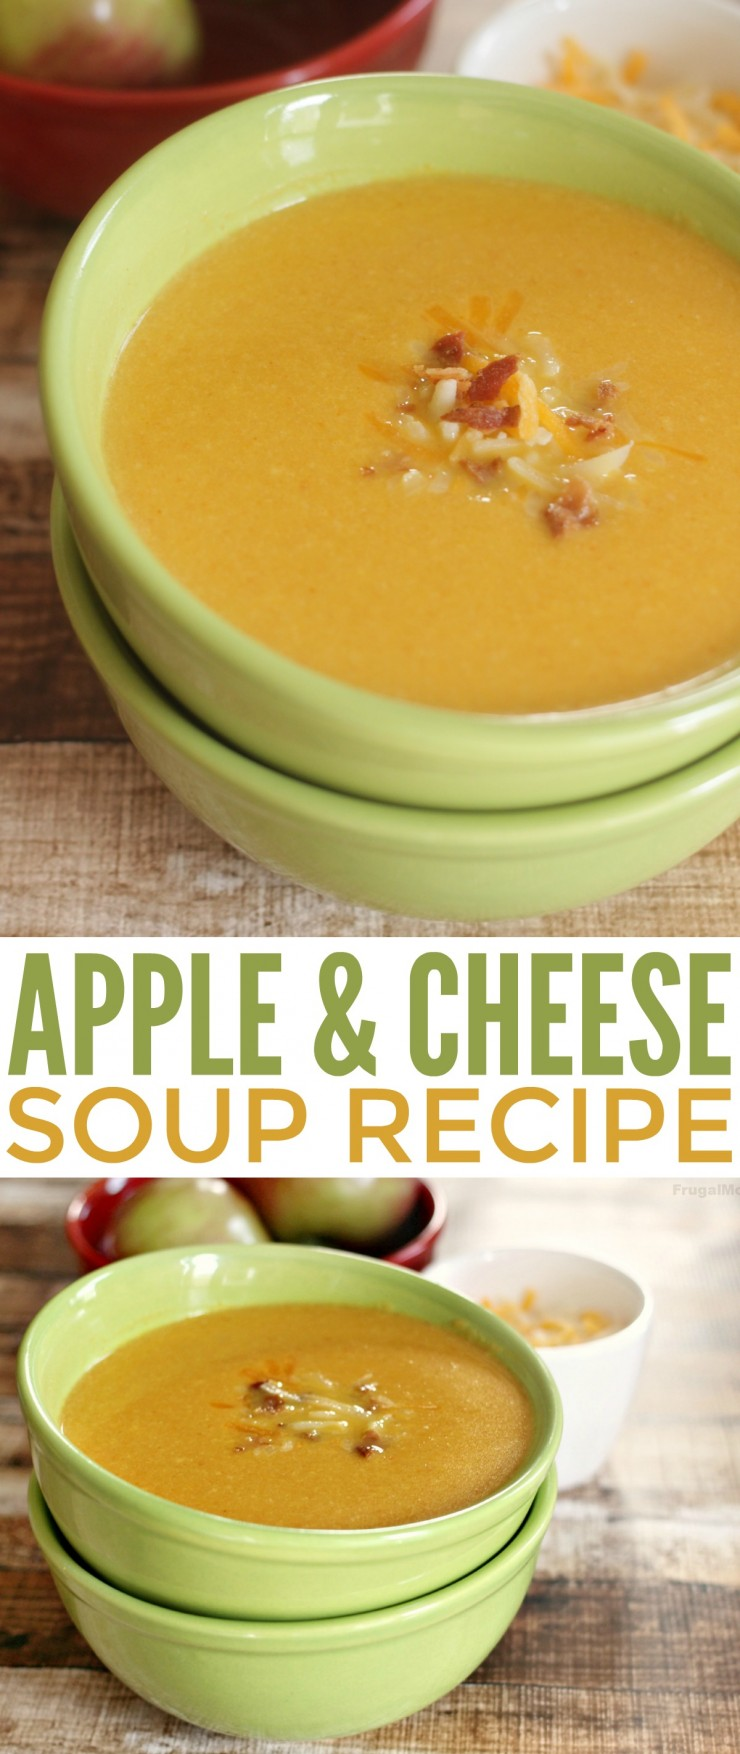 This Apple & Cheese Soup is a savoury soup with a hint of sweet that is perfect for an autumn dinner. This soup recipe can easily be made vegetarian too.